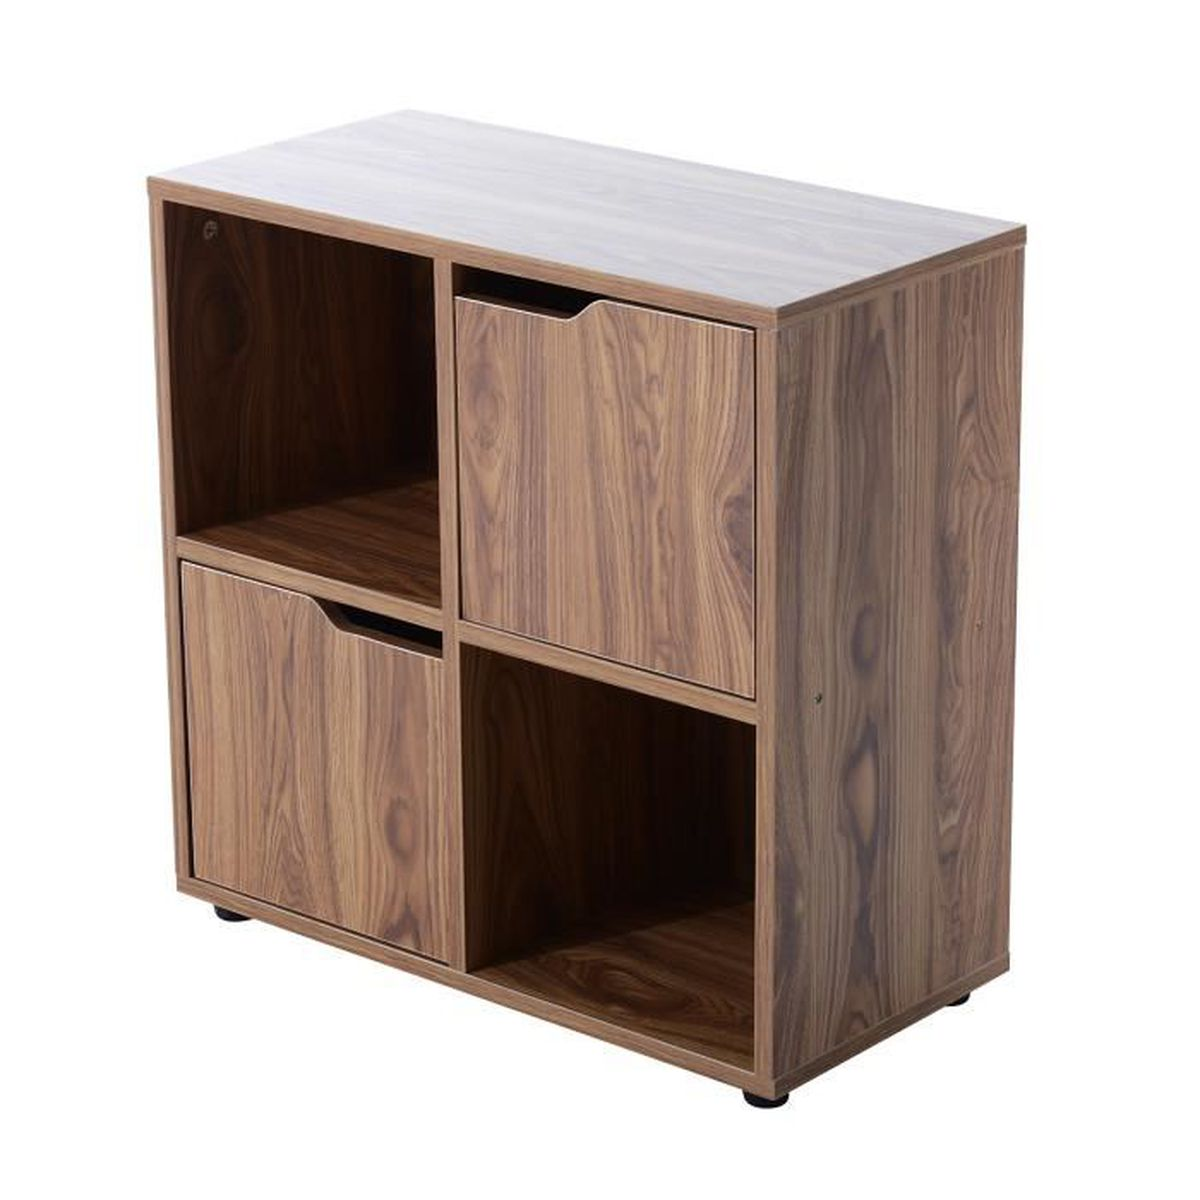 Meuble de rangement biblioth que design contemporain 2 for Meuble 12 cases